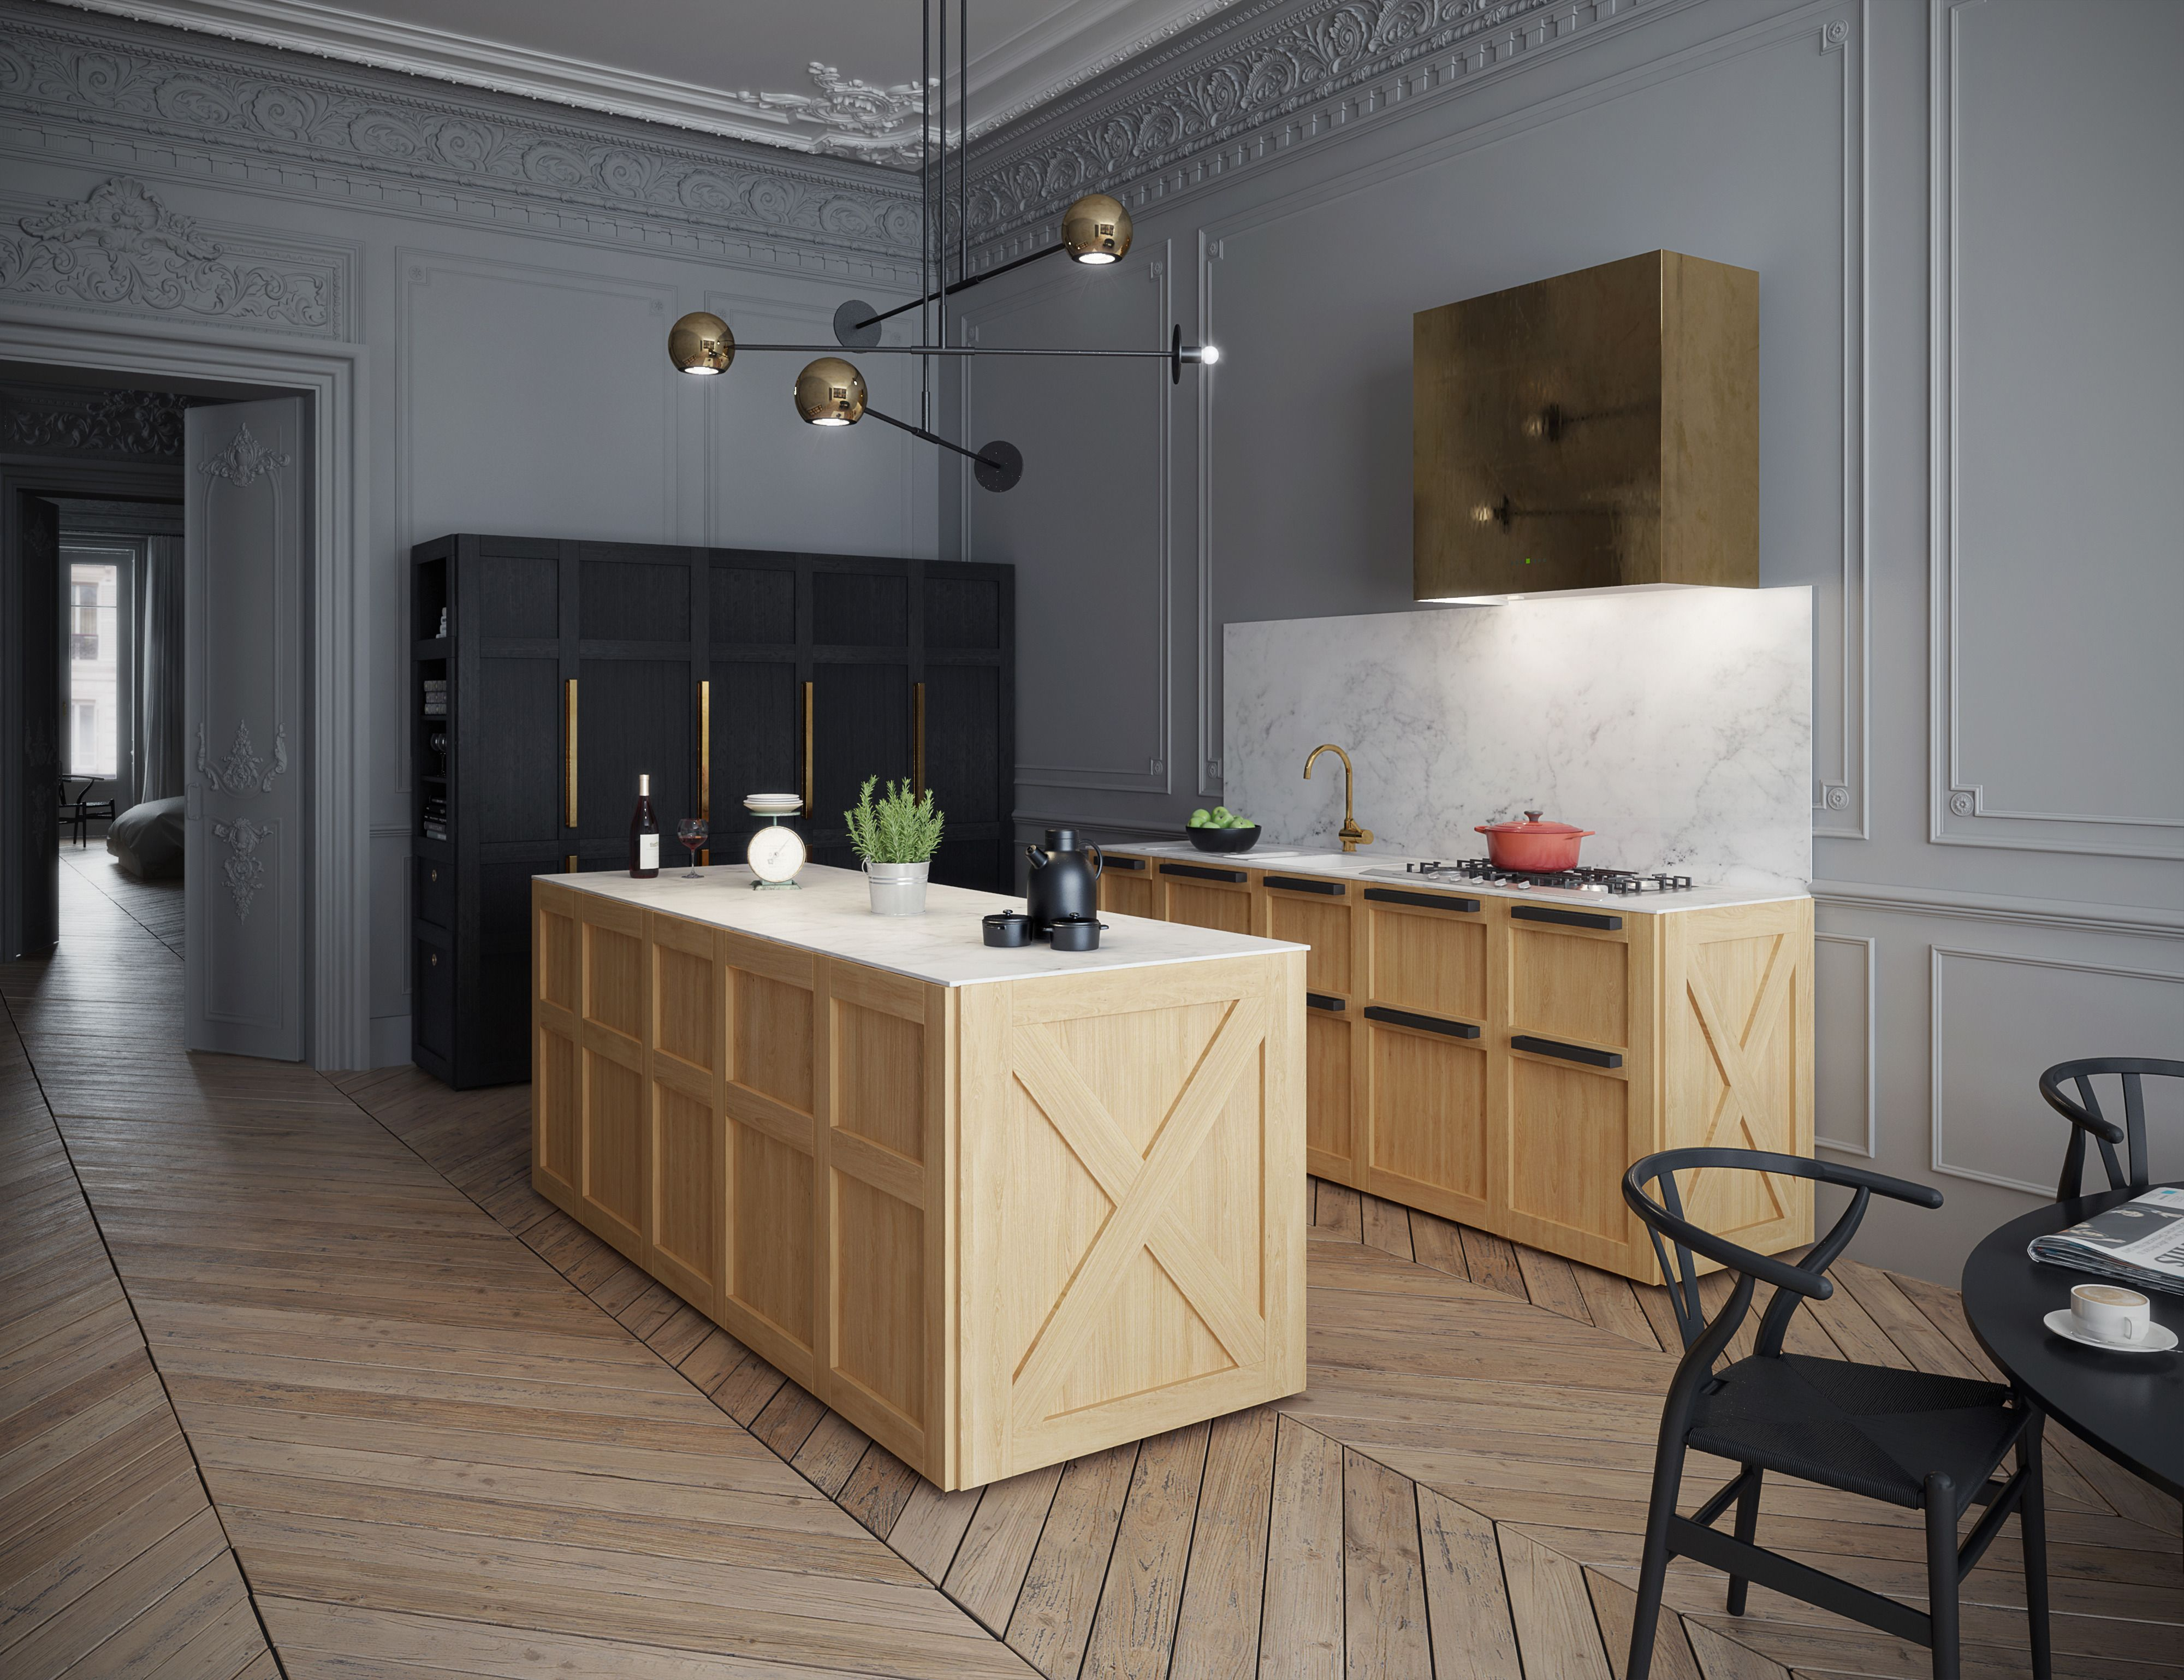 To Paris With L Picture Gallery In 2020 Italian Kitchen Design Rustic Kitchen Design Kitchen Inspiration Design